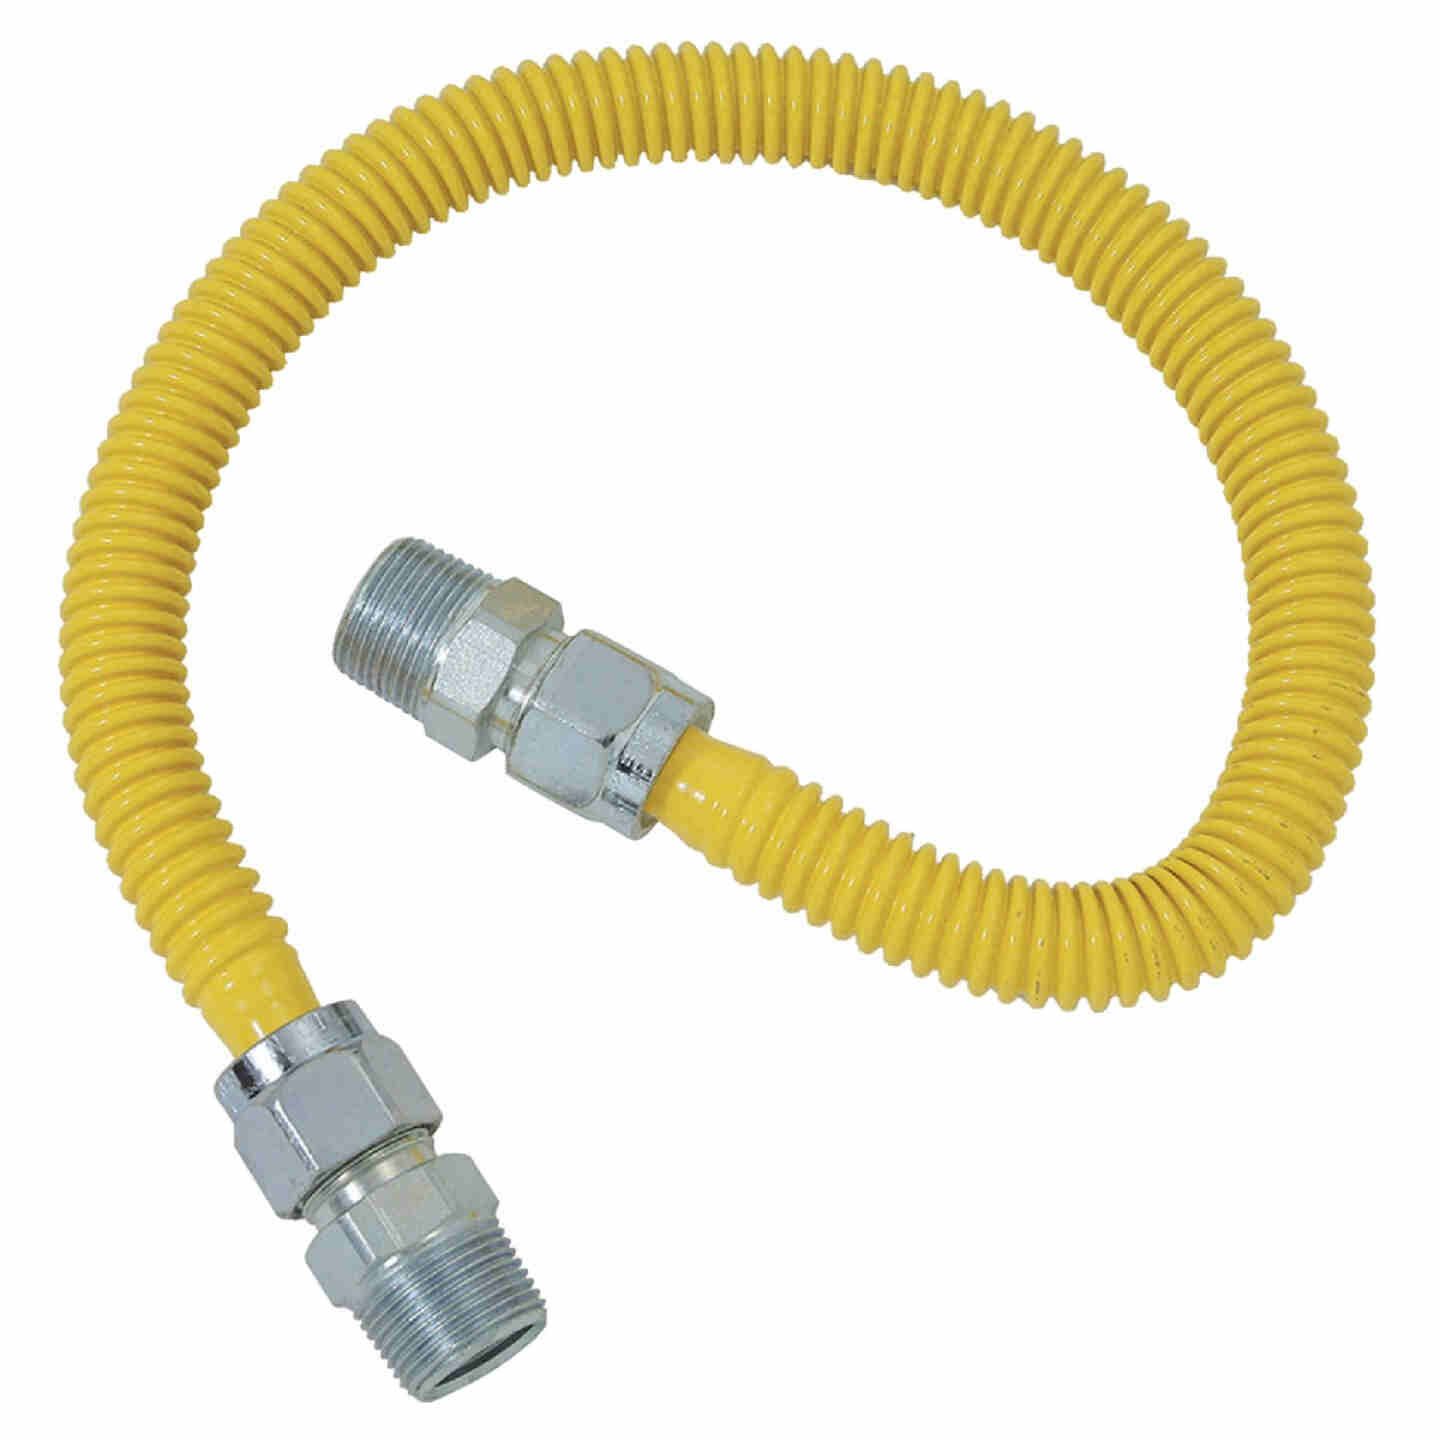 Dormont 5/8 In. OD x 24 In. Coated Stainless Steel Gas Connector, 3/4 In. MIP x 1/2 In. MIP (Tapped 3/8 In. FIP) Image 1